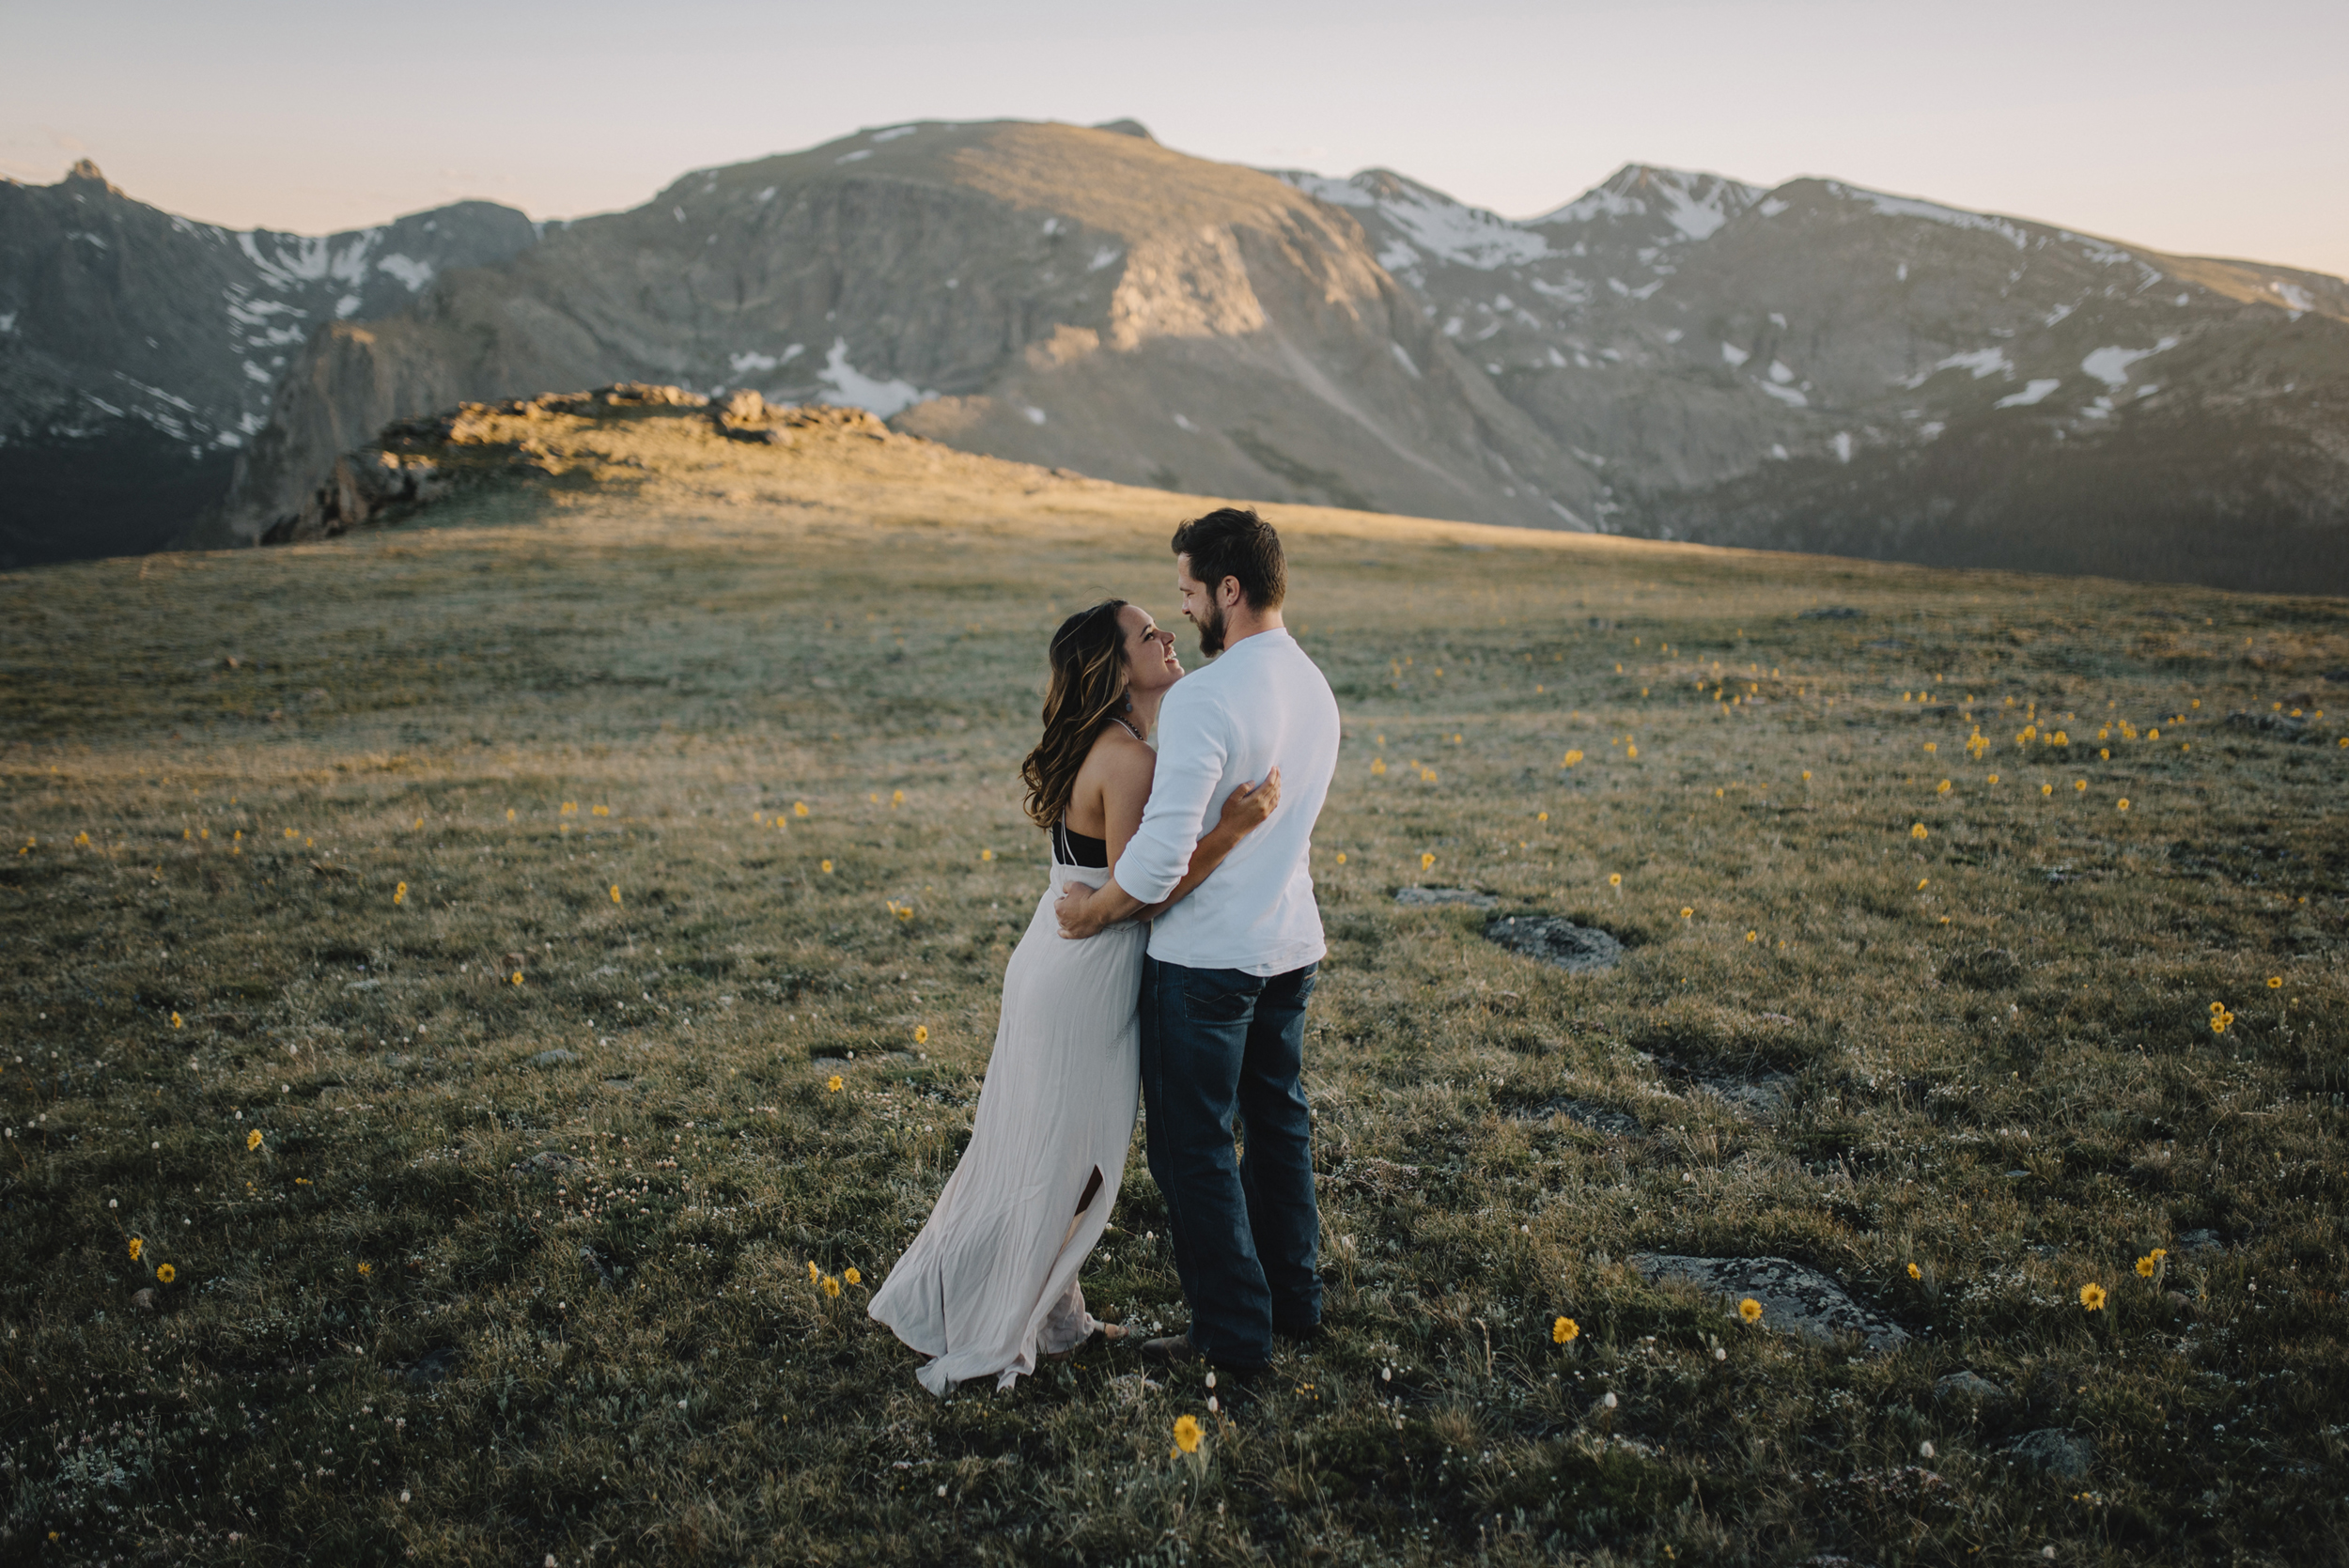 Rocky Mountain National Park Colorado Adventure Engagement Photographer167.jpg